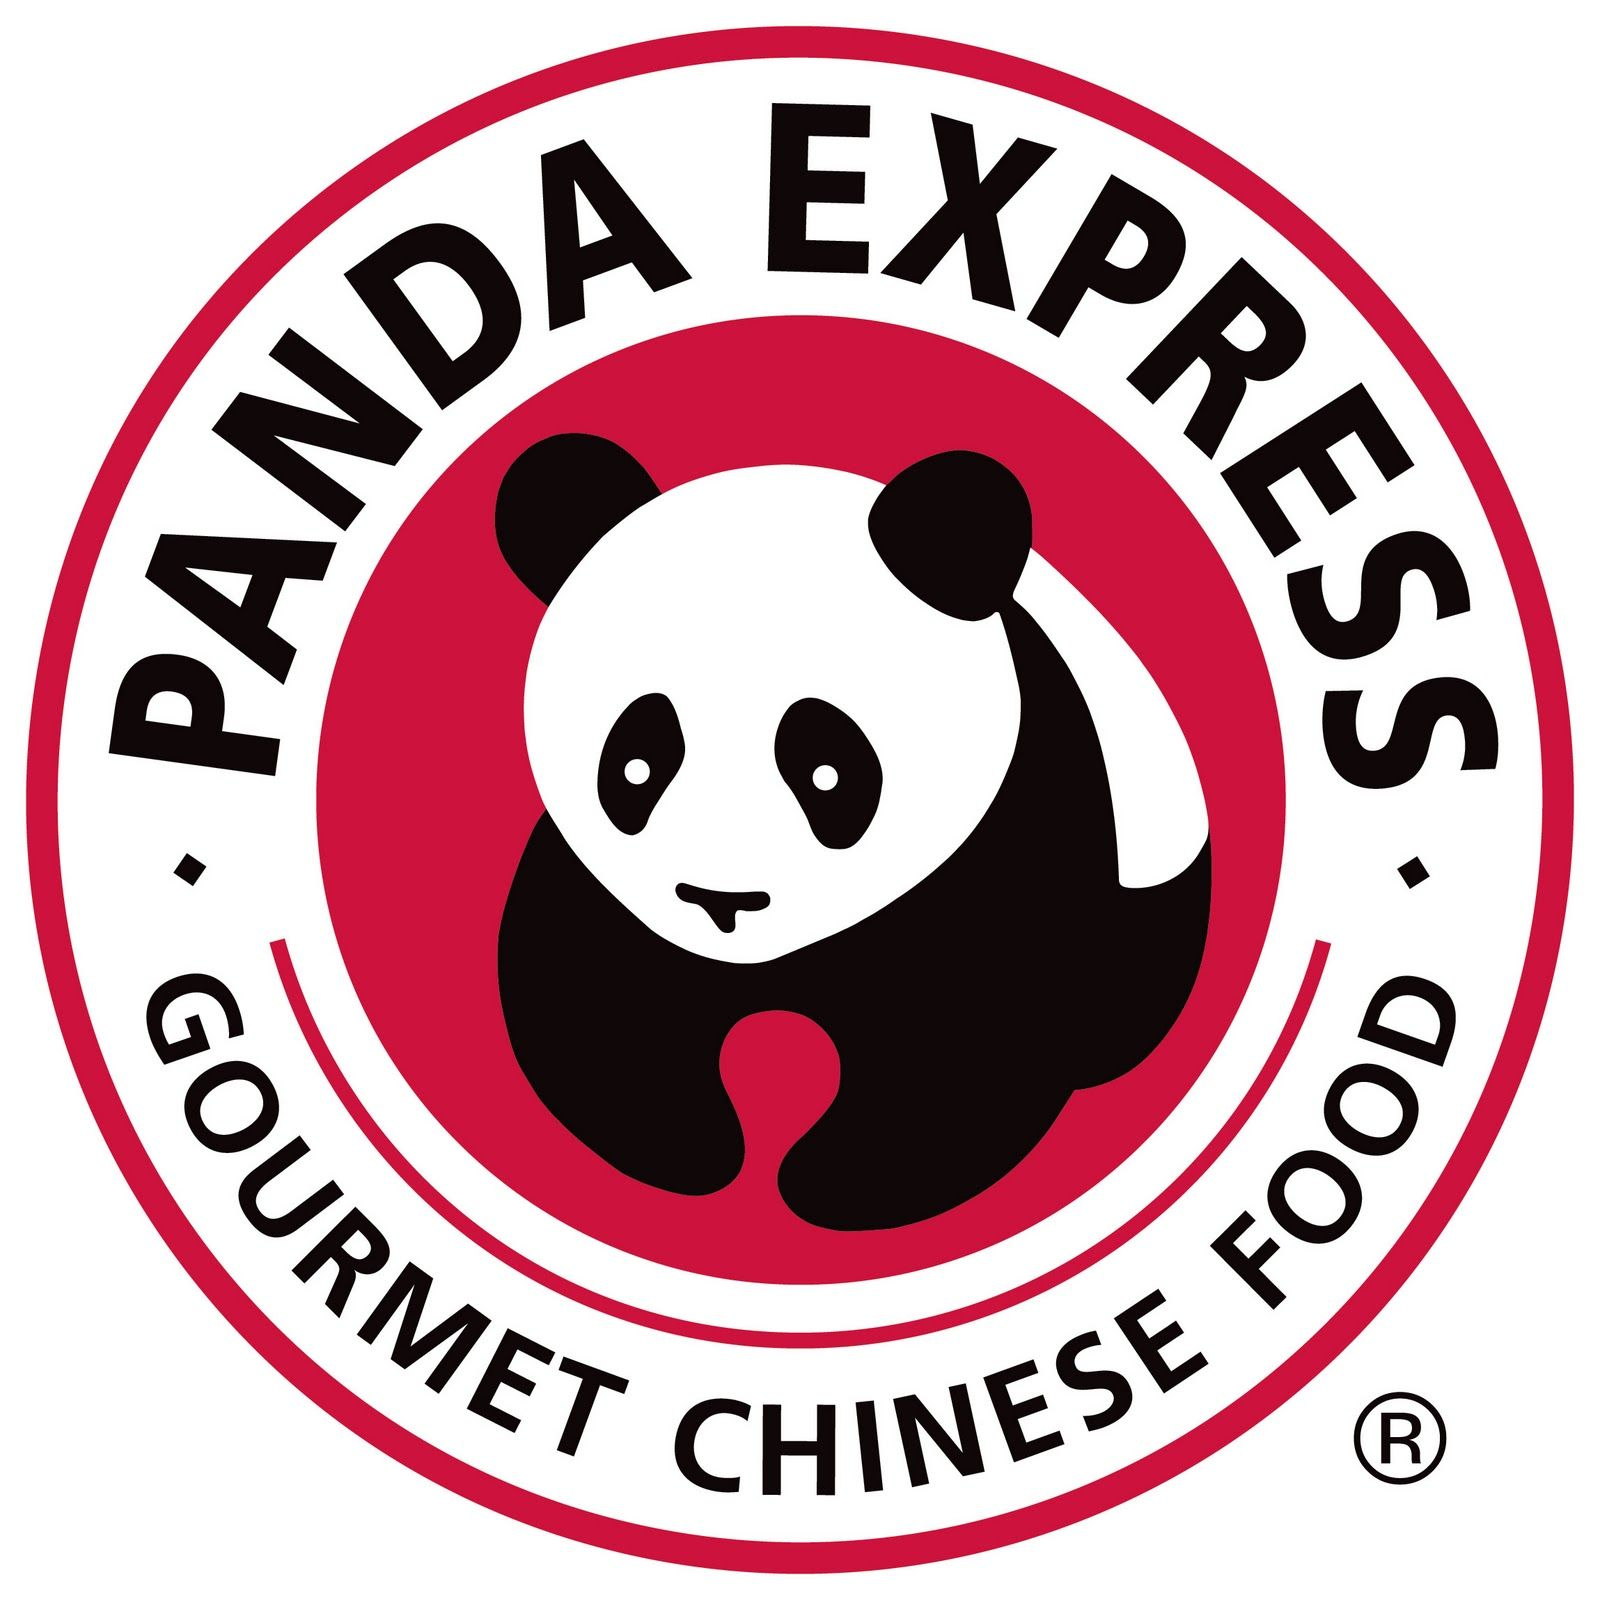 Fun To So Something With This Logo Panda Express Orange Chicken